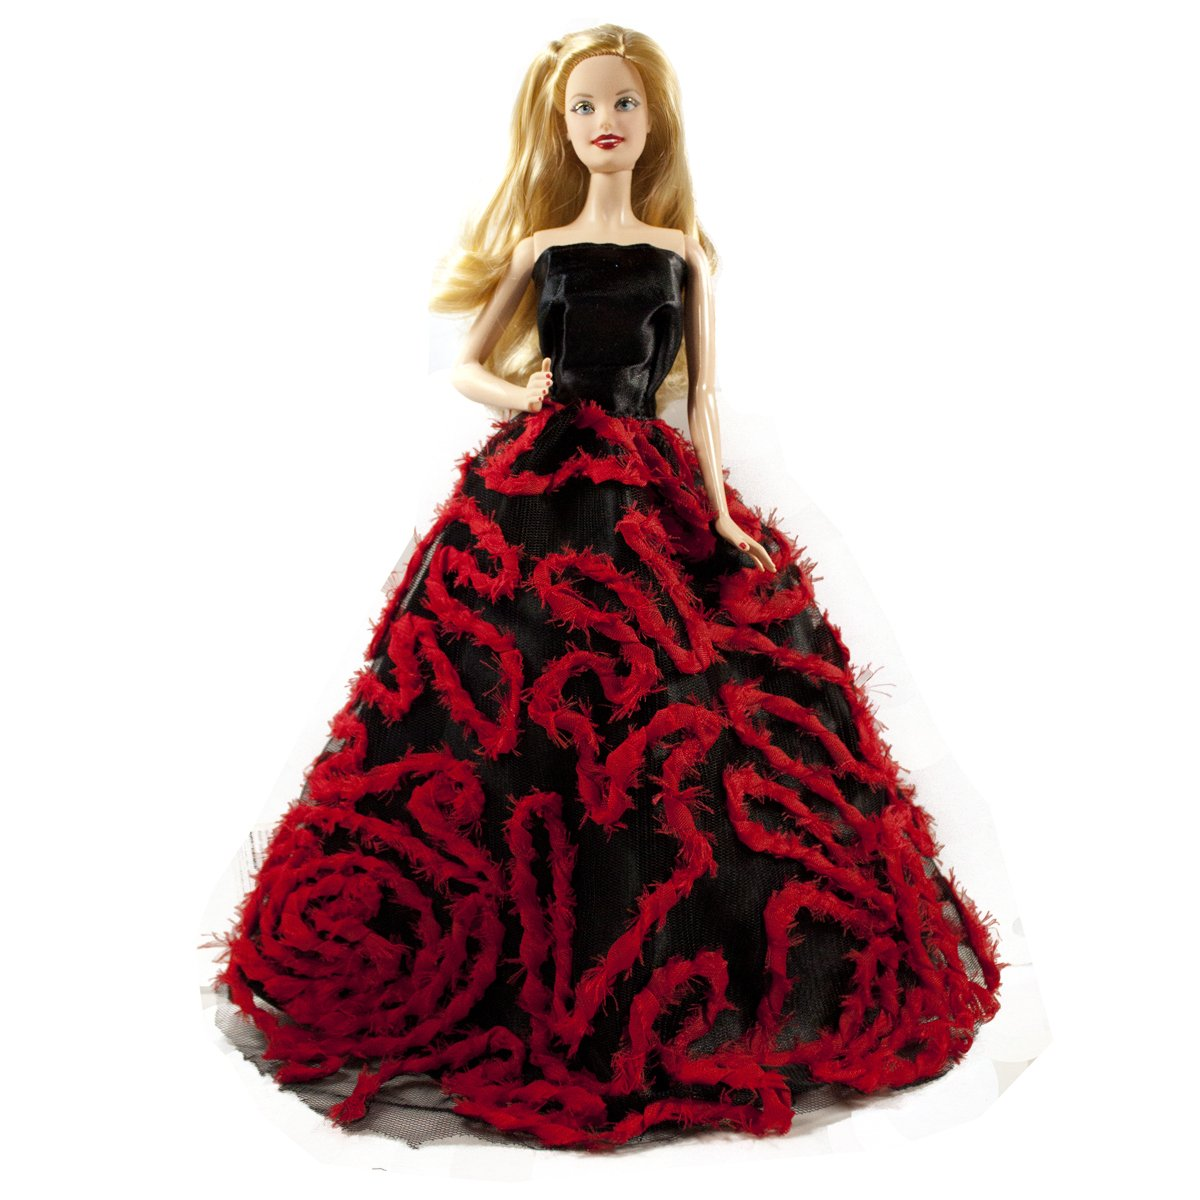 Black & Red Ball Gown Dress for Barbie Doll